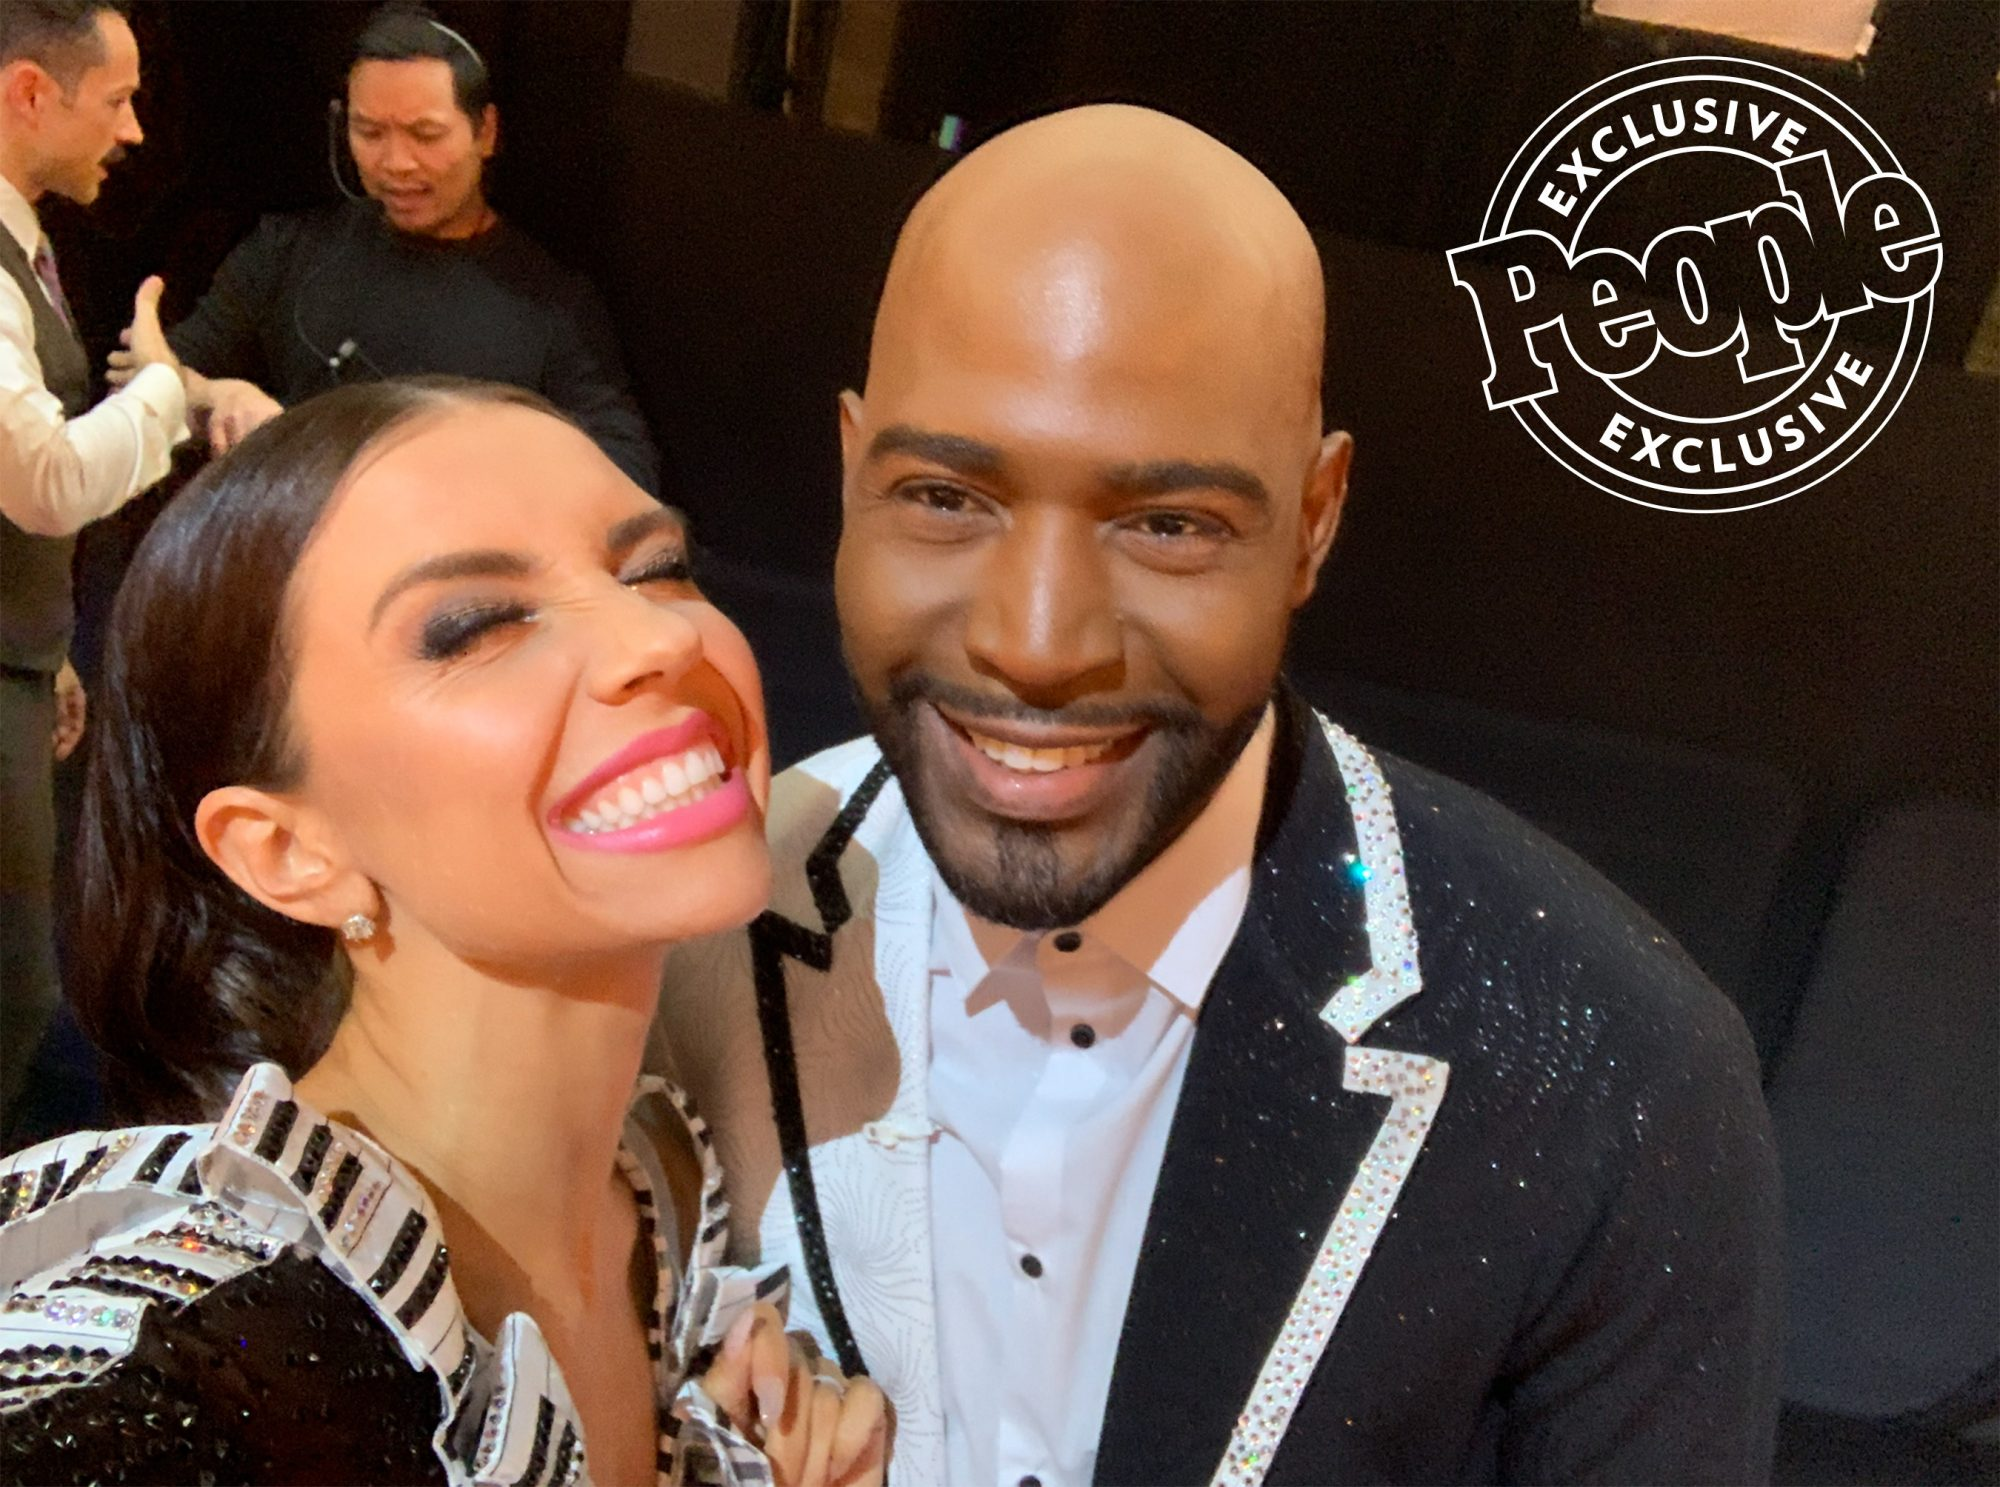 DWTS Pro Jenna Johnson Details Movie Week with Karamo Brown